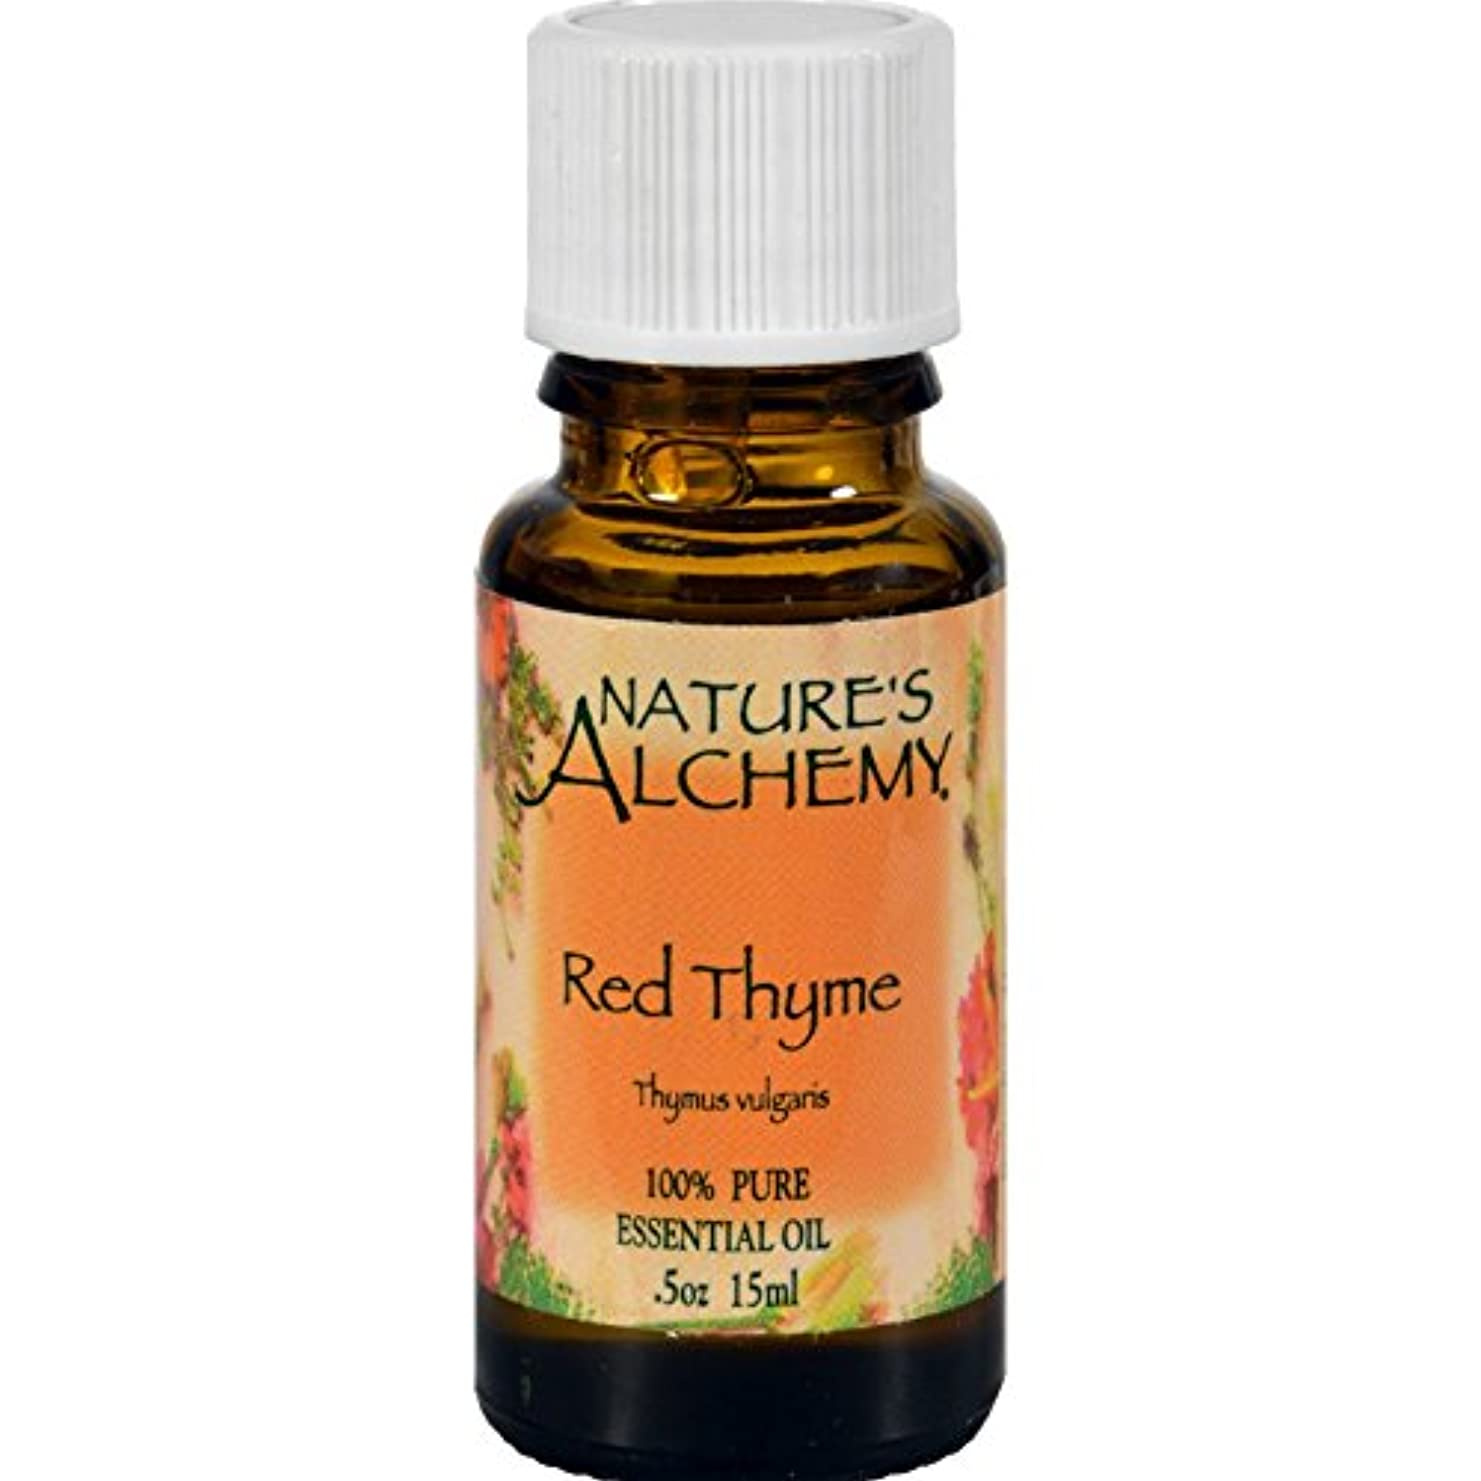 ポジティブ配偶者考案する100% Pure Essential Oil Red Thyme - 0.5 fl oz by Nature's Alchemy